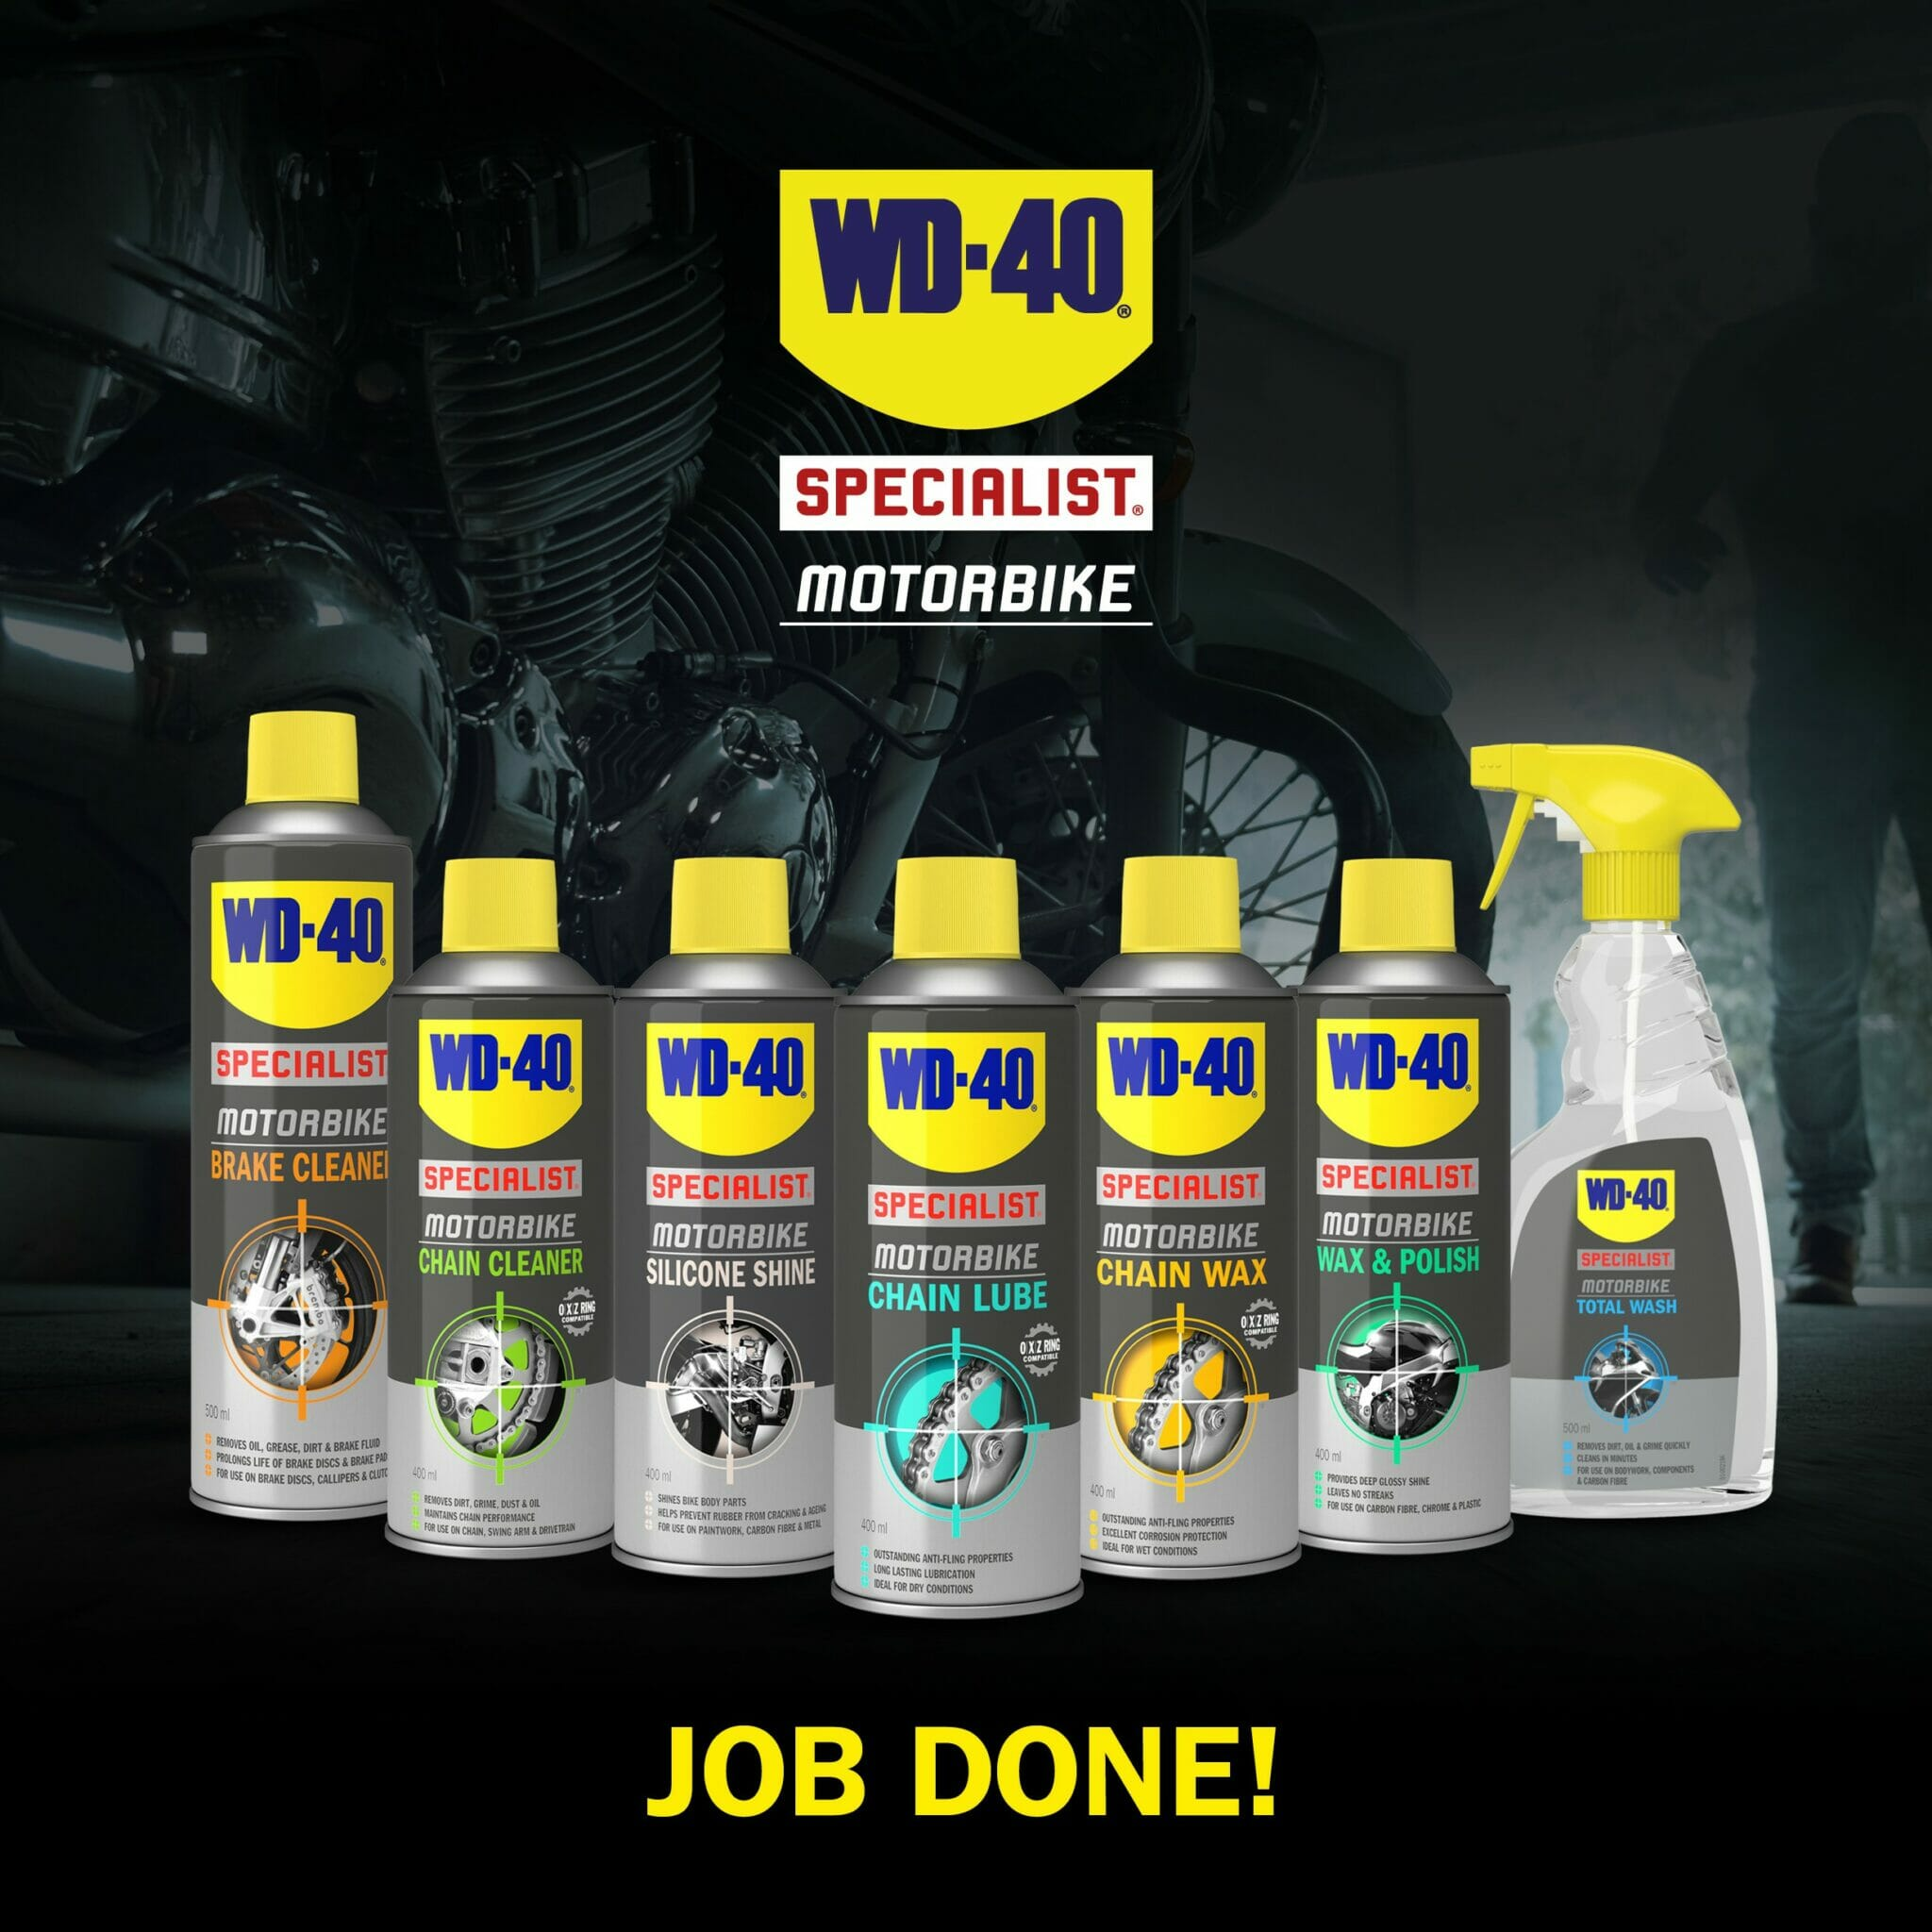 wd40 motorbike silicone shine how to use part 8